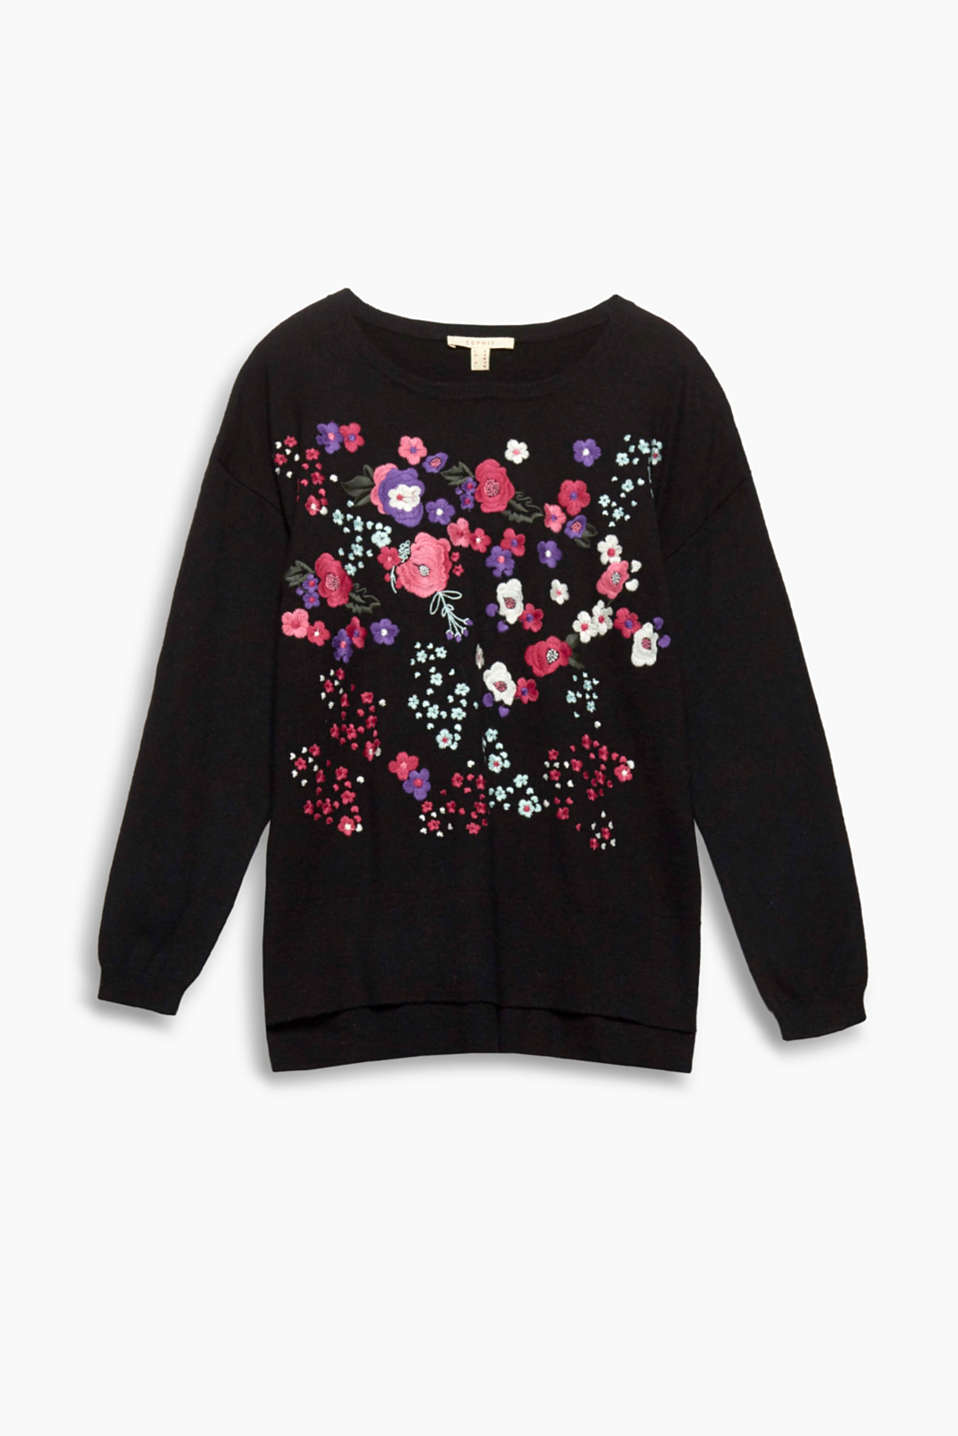 Fine knit meets feminine embroidery - both make these soft jumper a stylish head-turner!